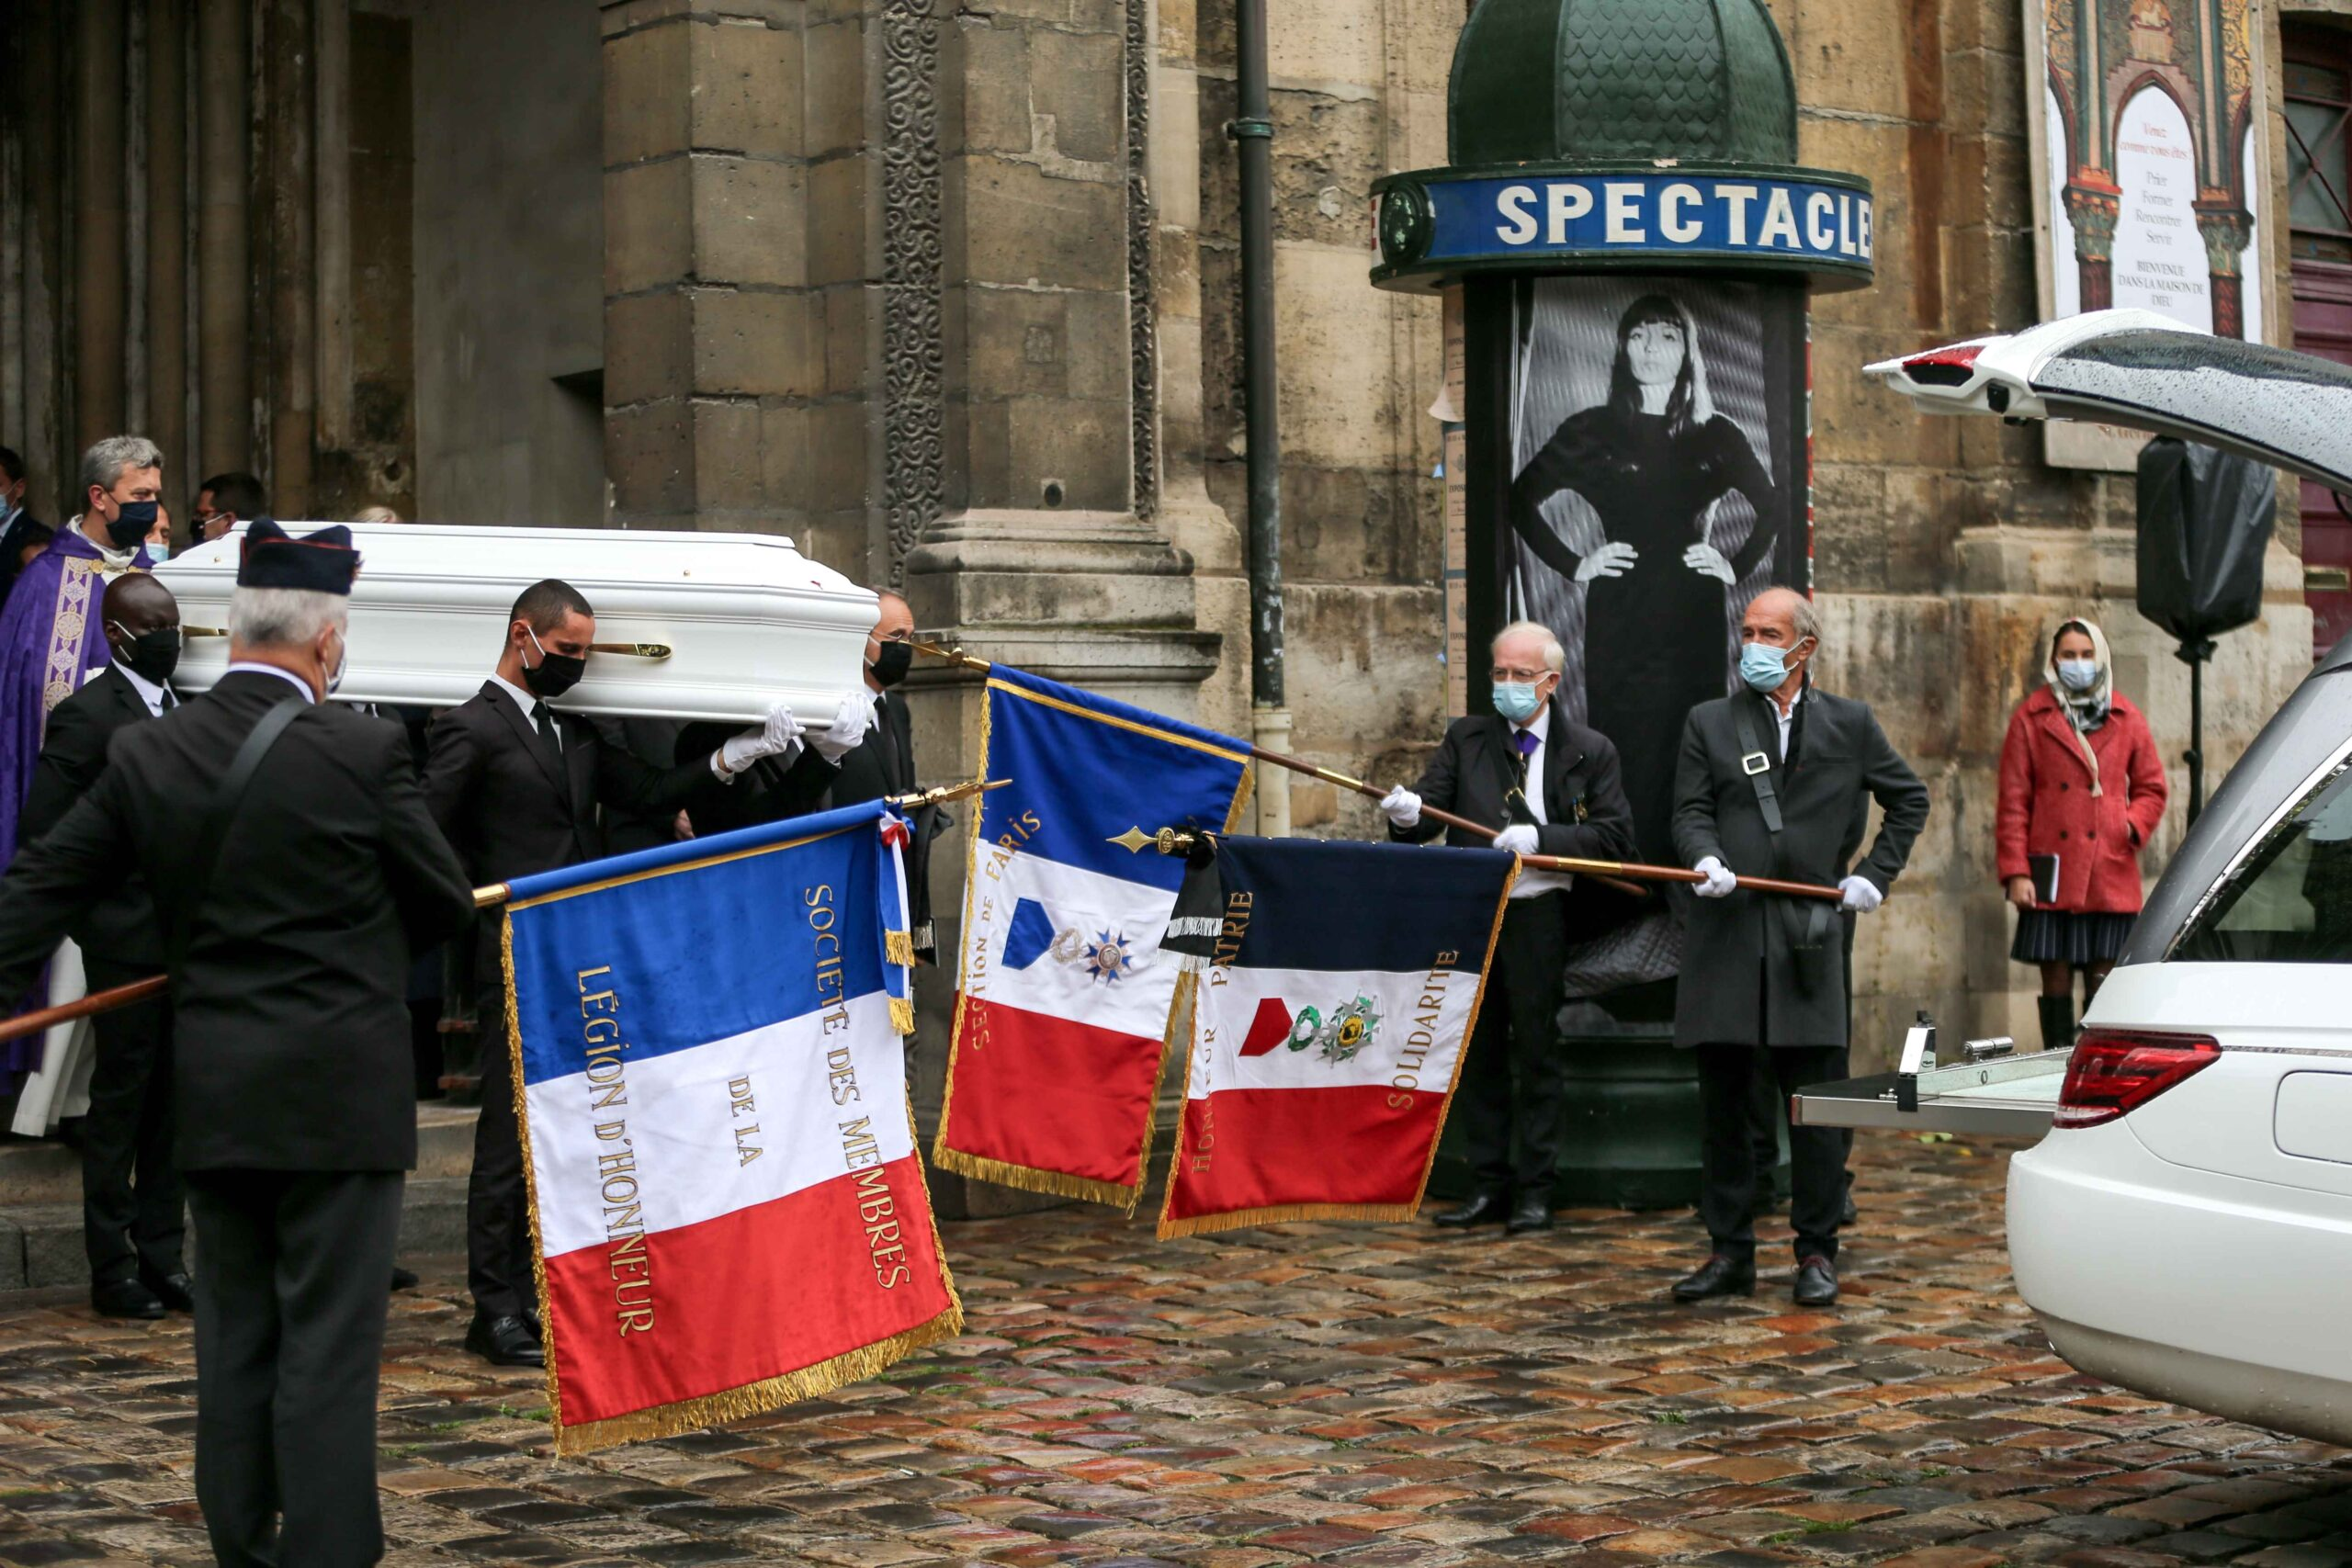 Pallbearers carry out the coffin of French singer Juliette Greco during her funeral ceremony at the Saint-Germain-des-Pres church in Paris, on October 5, 2020. Legendary French singer Juliette Greco, whose career spanned over half a century, died aged 93,